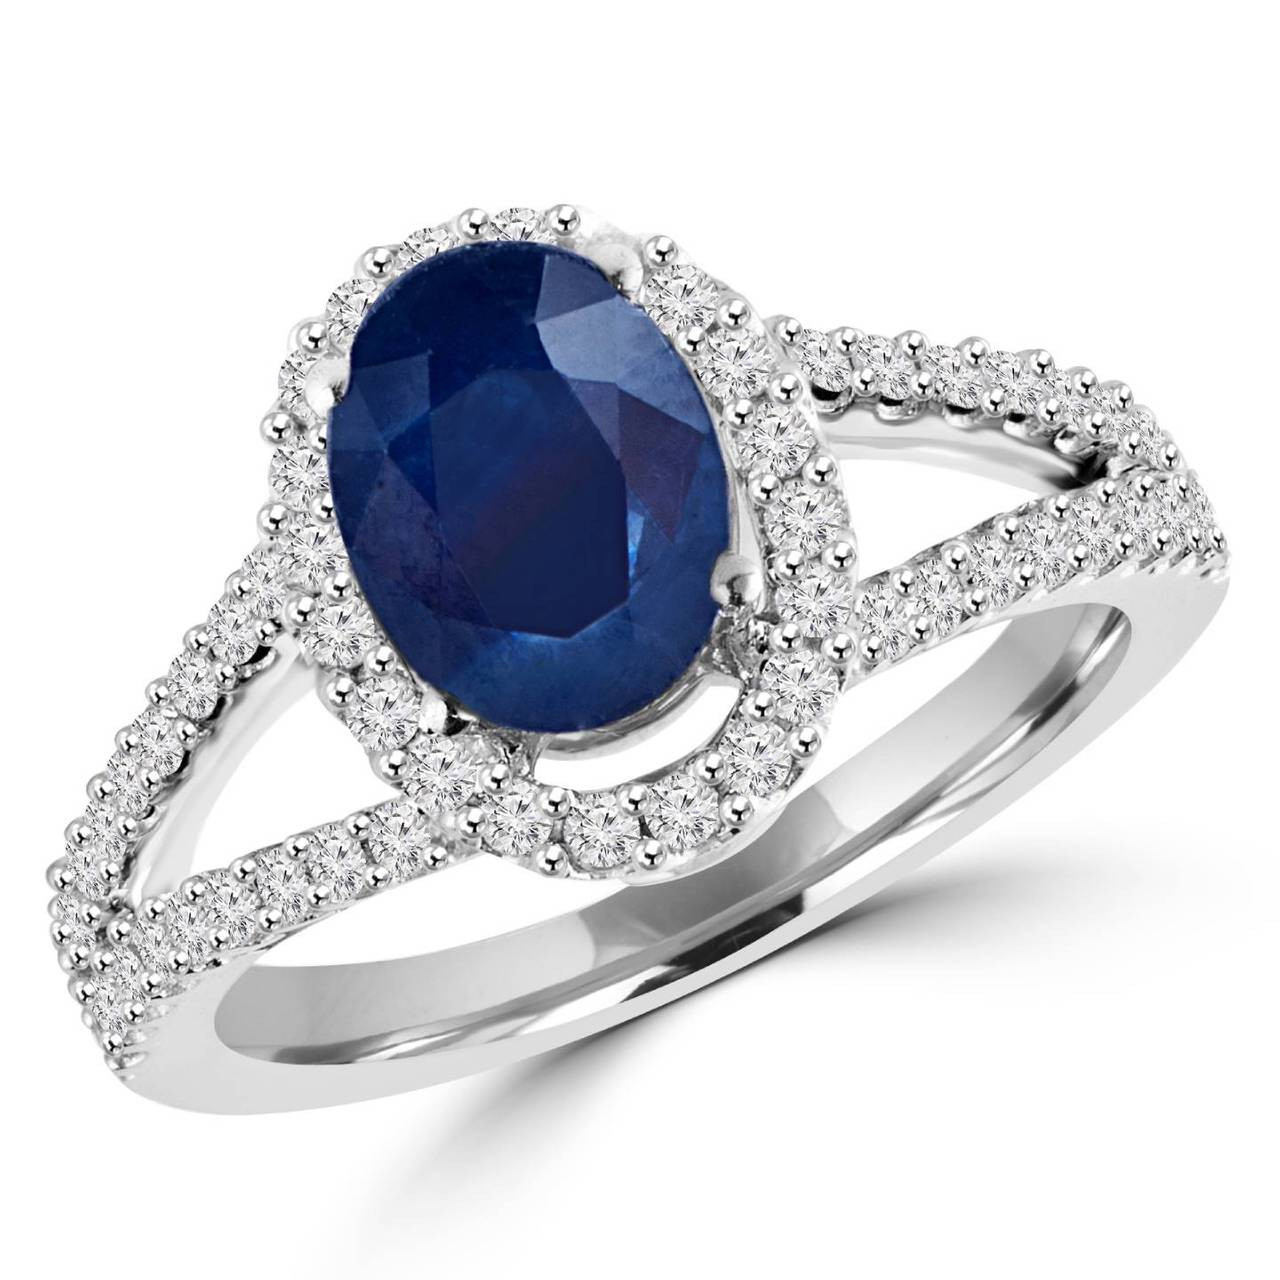 ring free ctw stones with cocktail rhodium sapphire brass products over side cz created